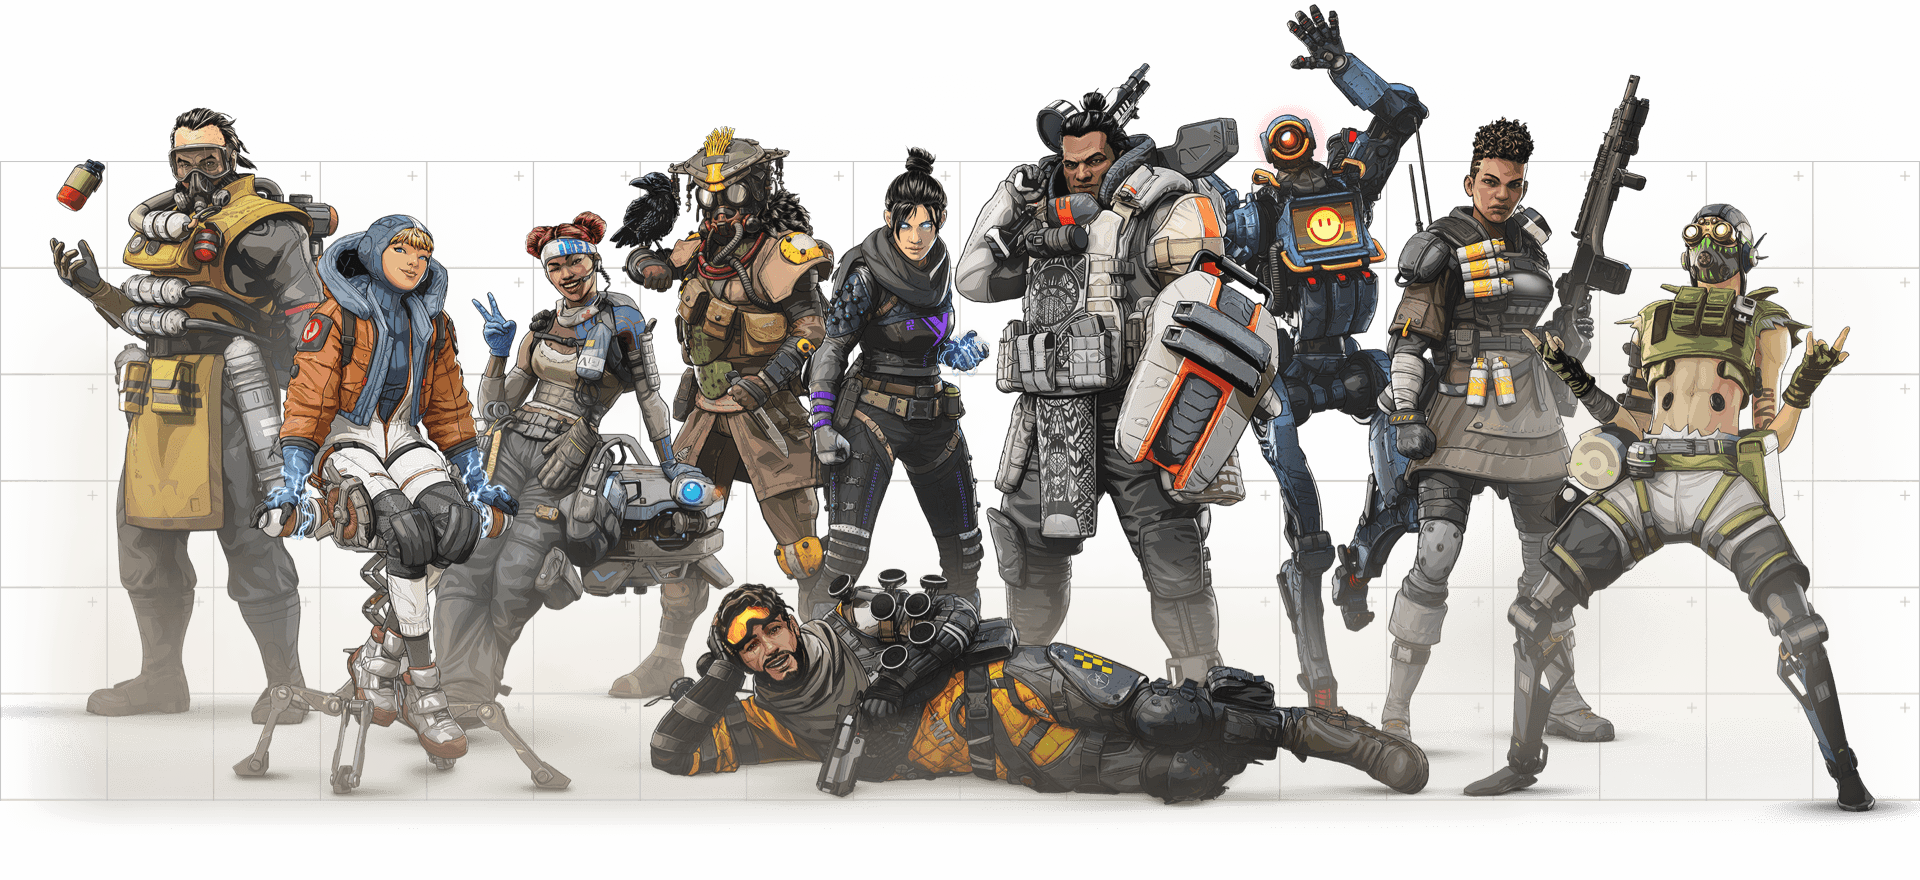 Apex Legends Next Characters What We Know So Far Dot Esports League of legends logo png league of legends png league of legends icon png legends of tomorrow png legends png. apex legends next characters what we